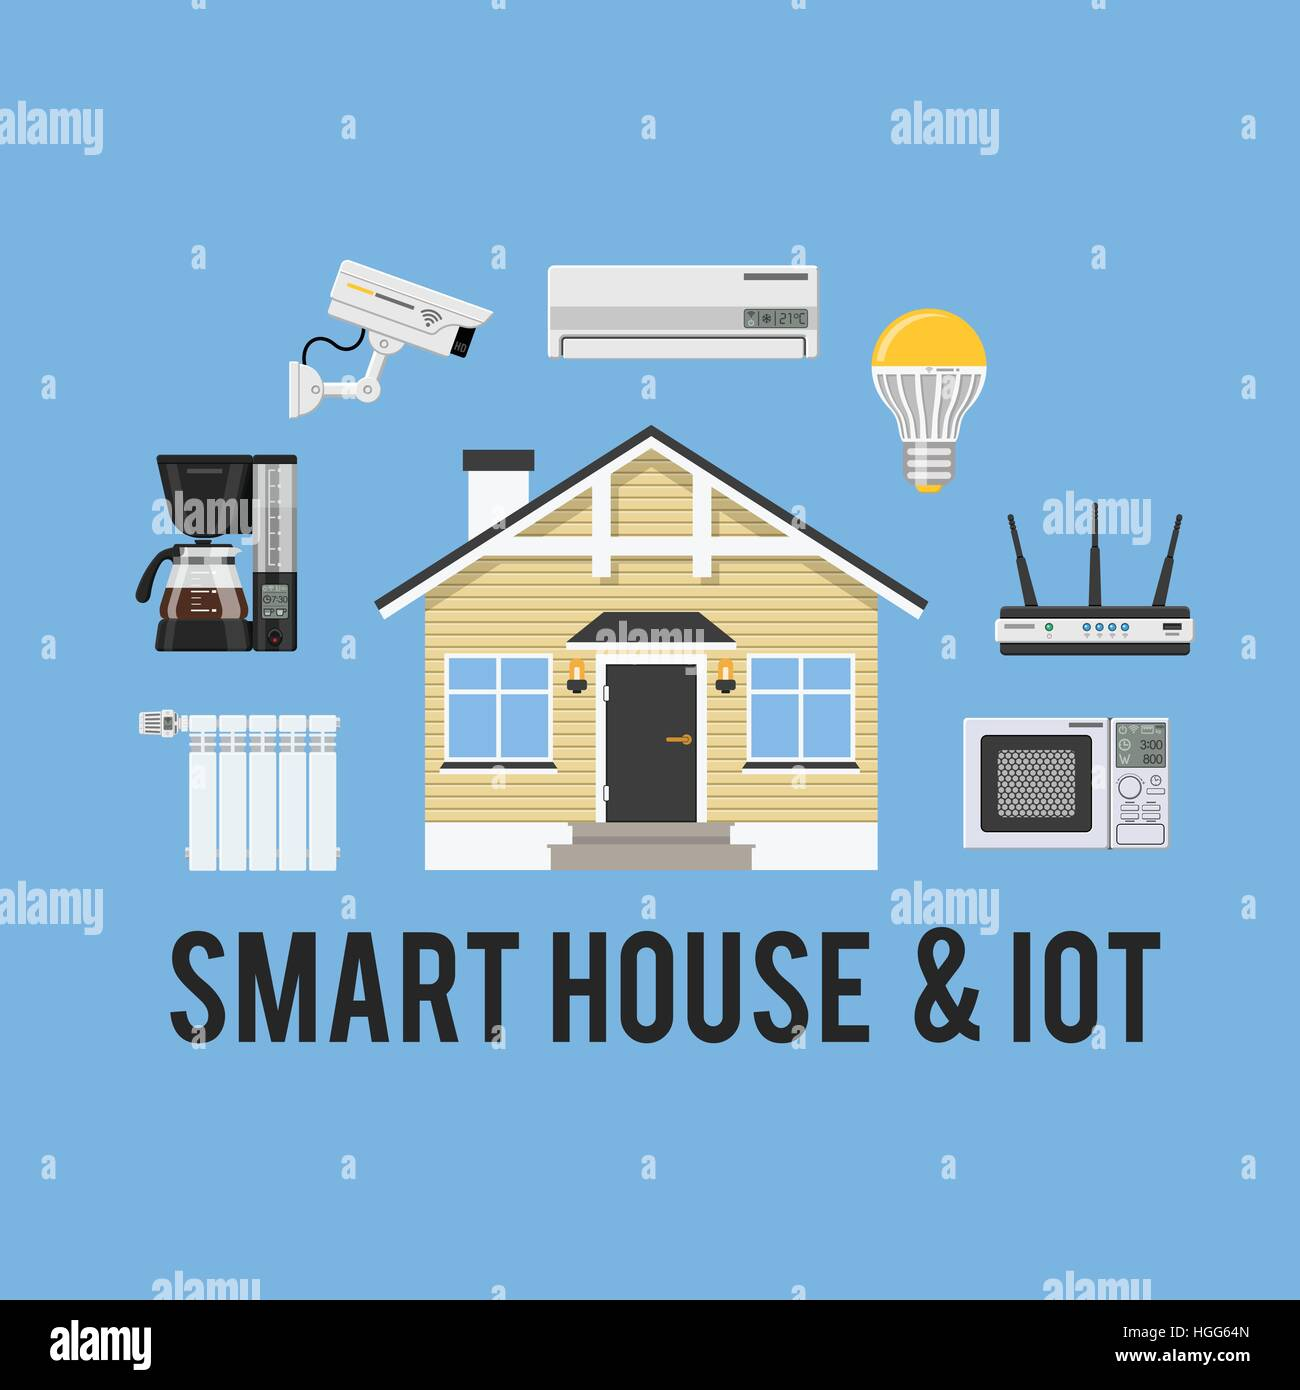 Smart House and internet of things concept - Stock Image